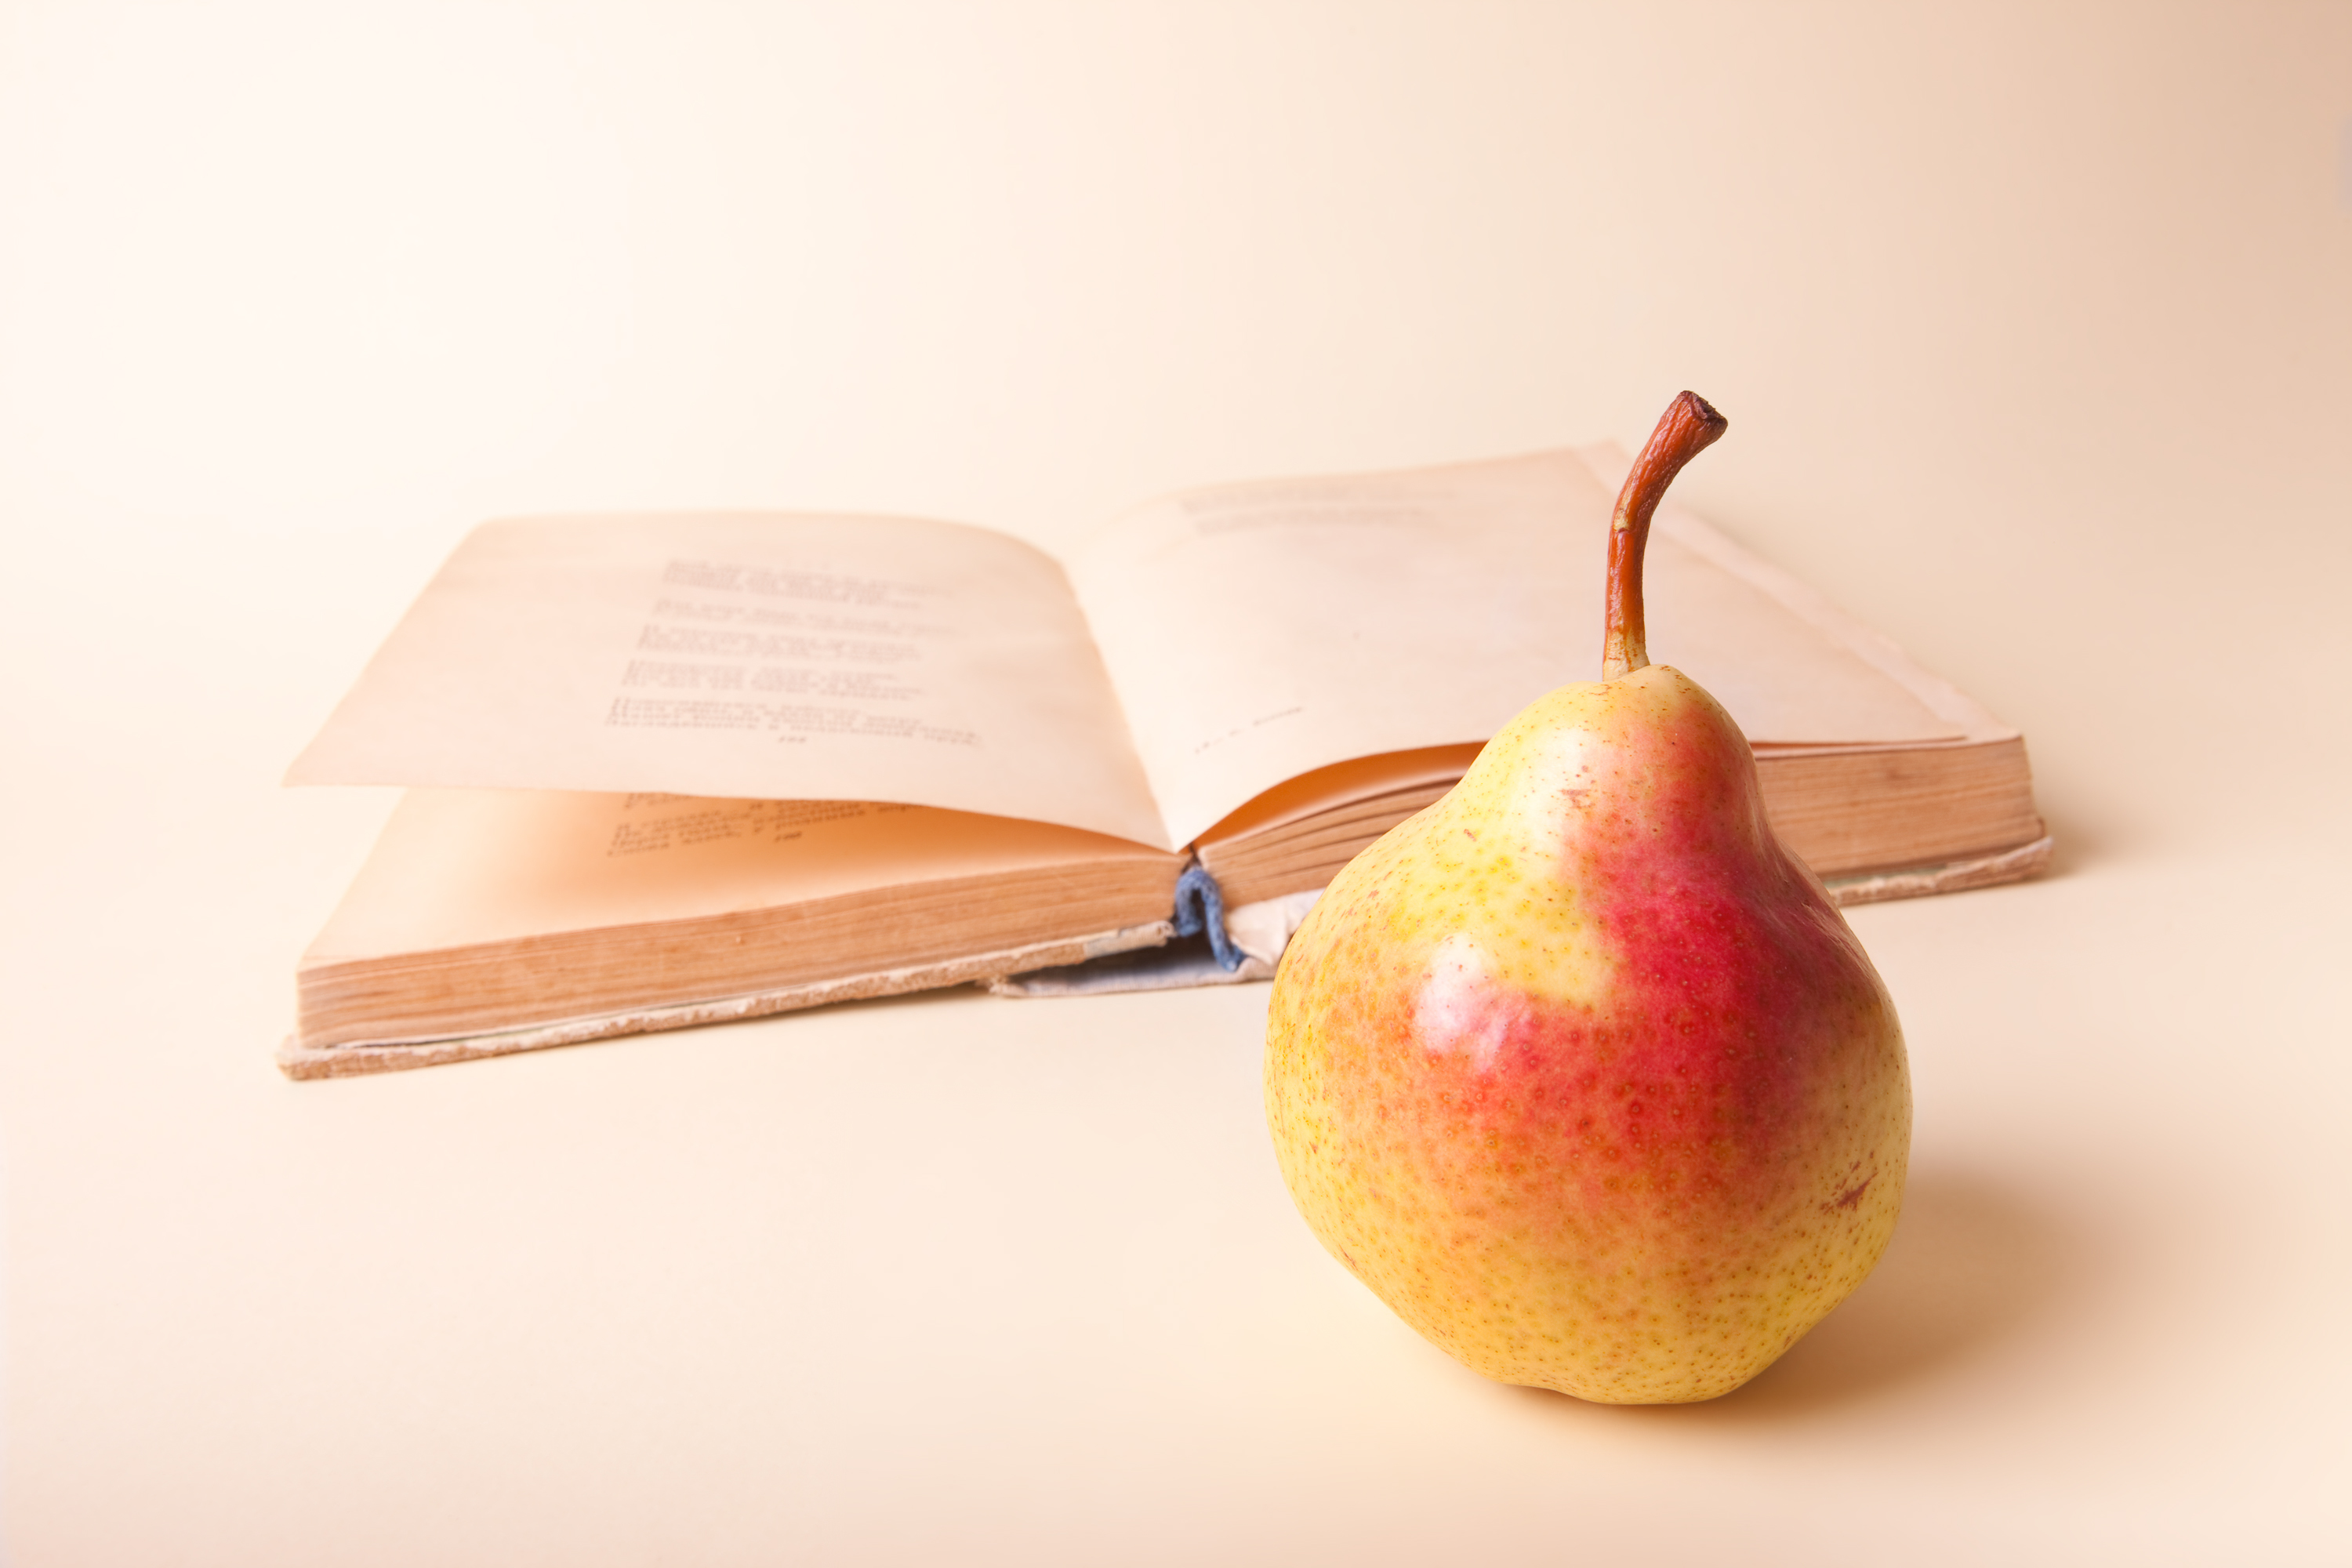 book and pear, Back-to-school, Book, Concept, Education, HQ Photo